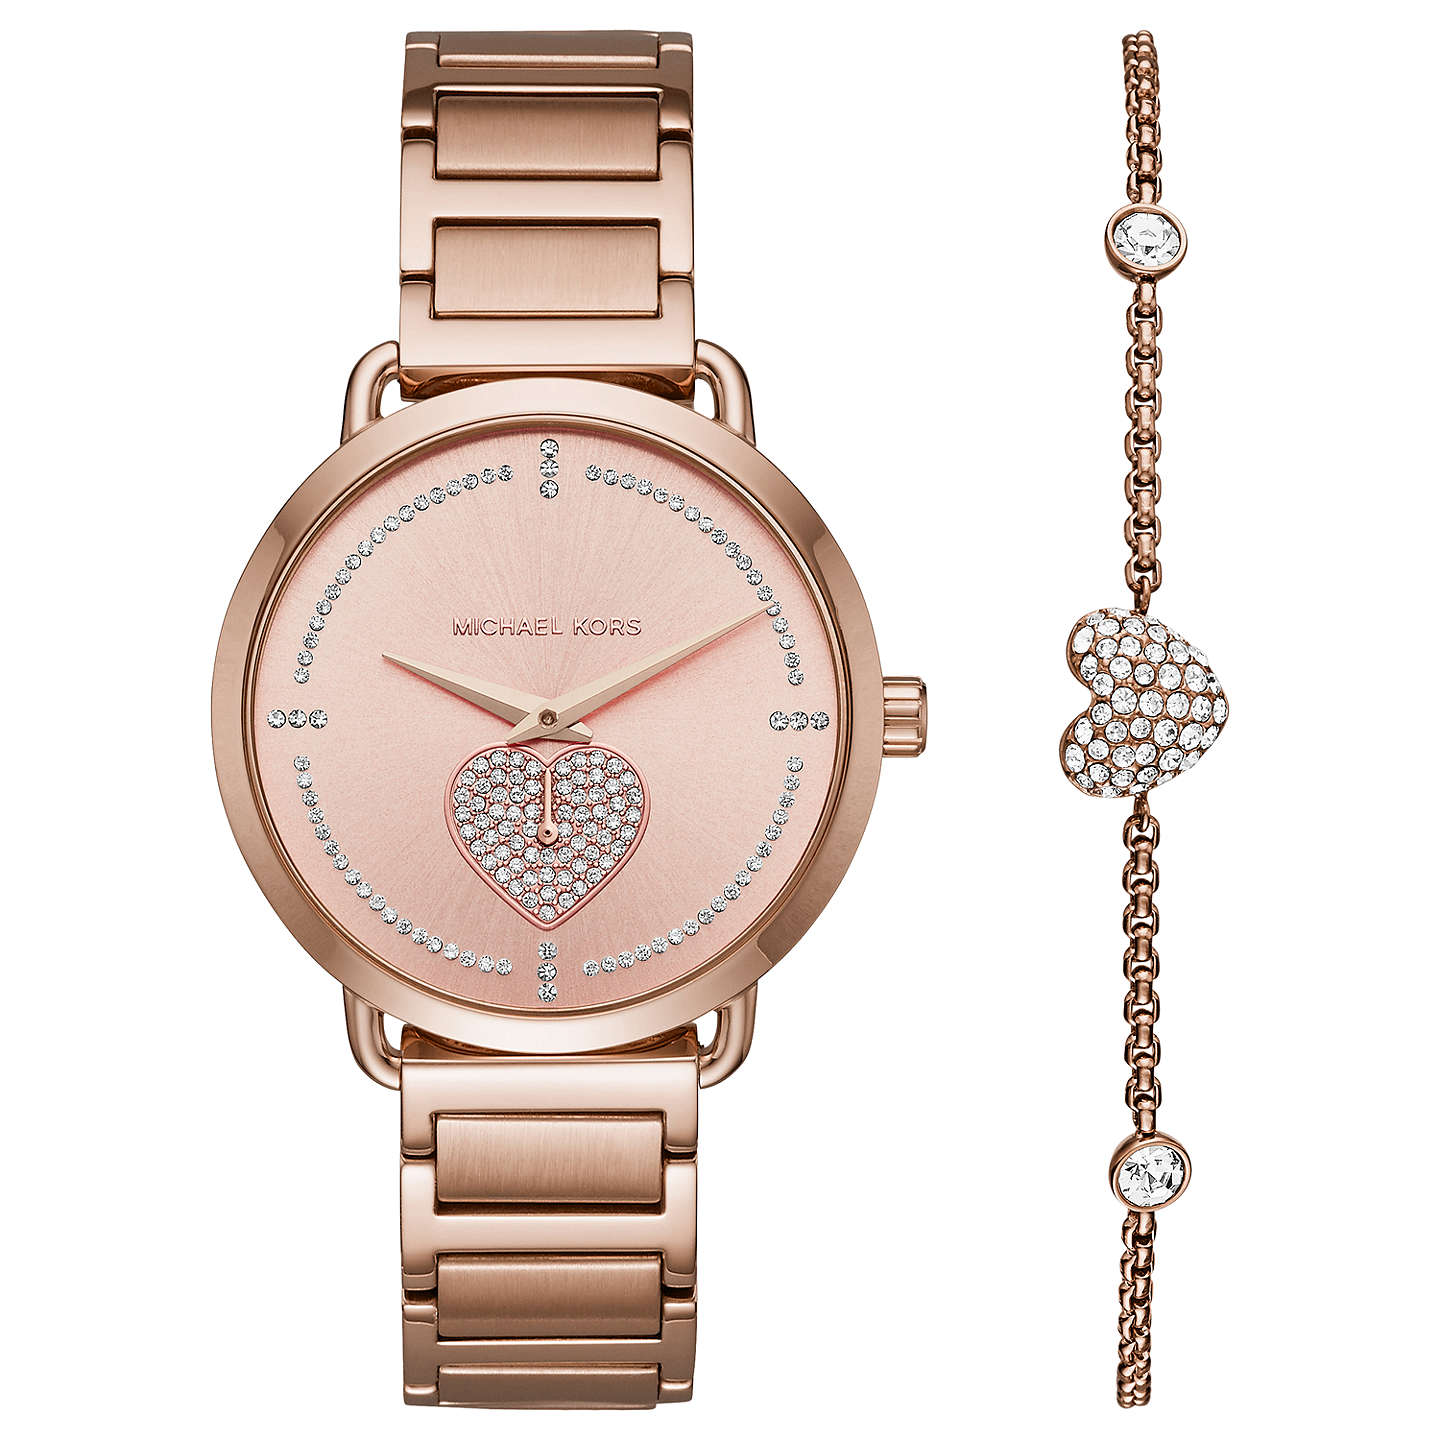 Michael Kors Mk3827 Women S Portia Bracelet Strap Watch And Heart Chain Gift Set Rose